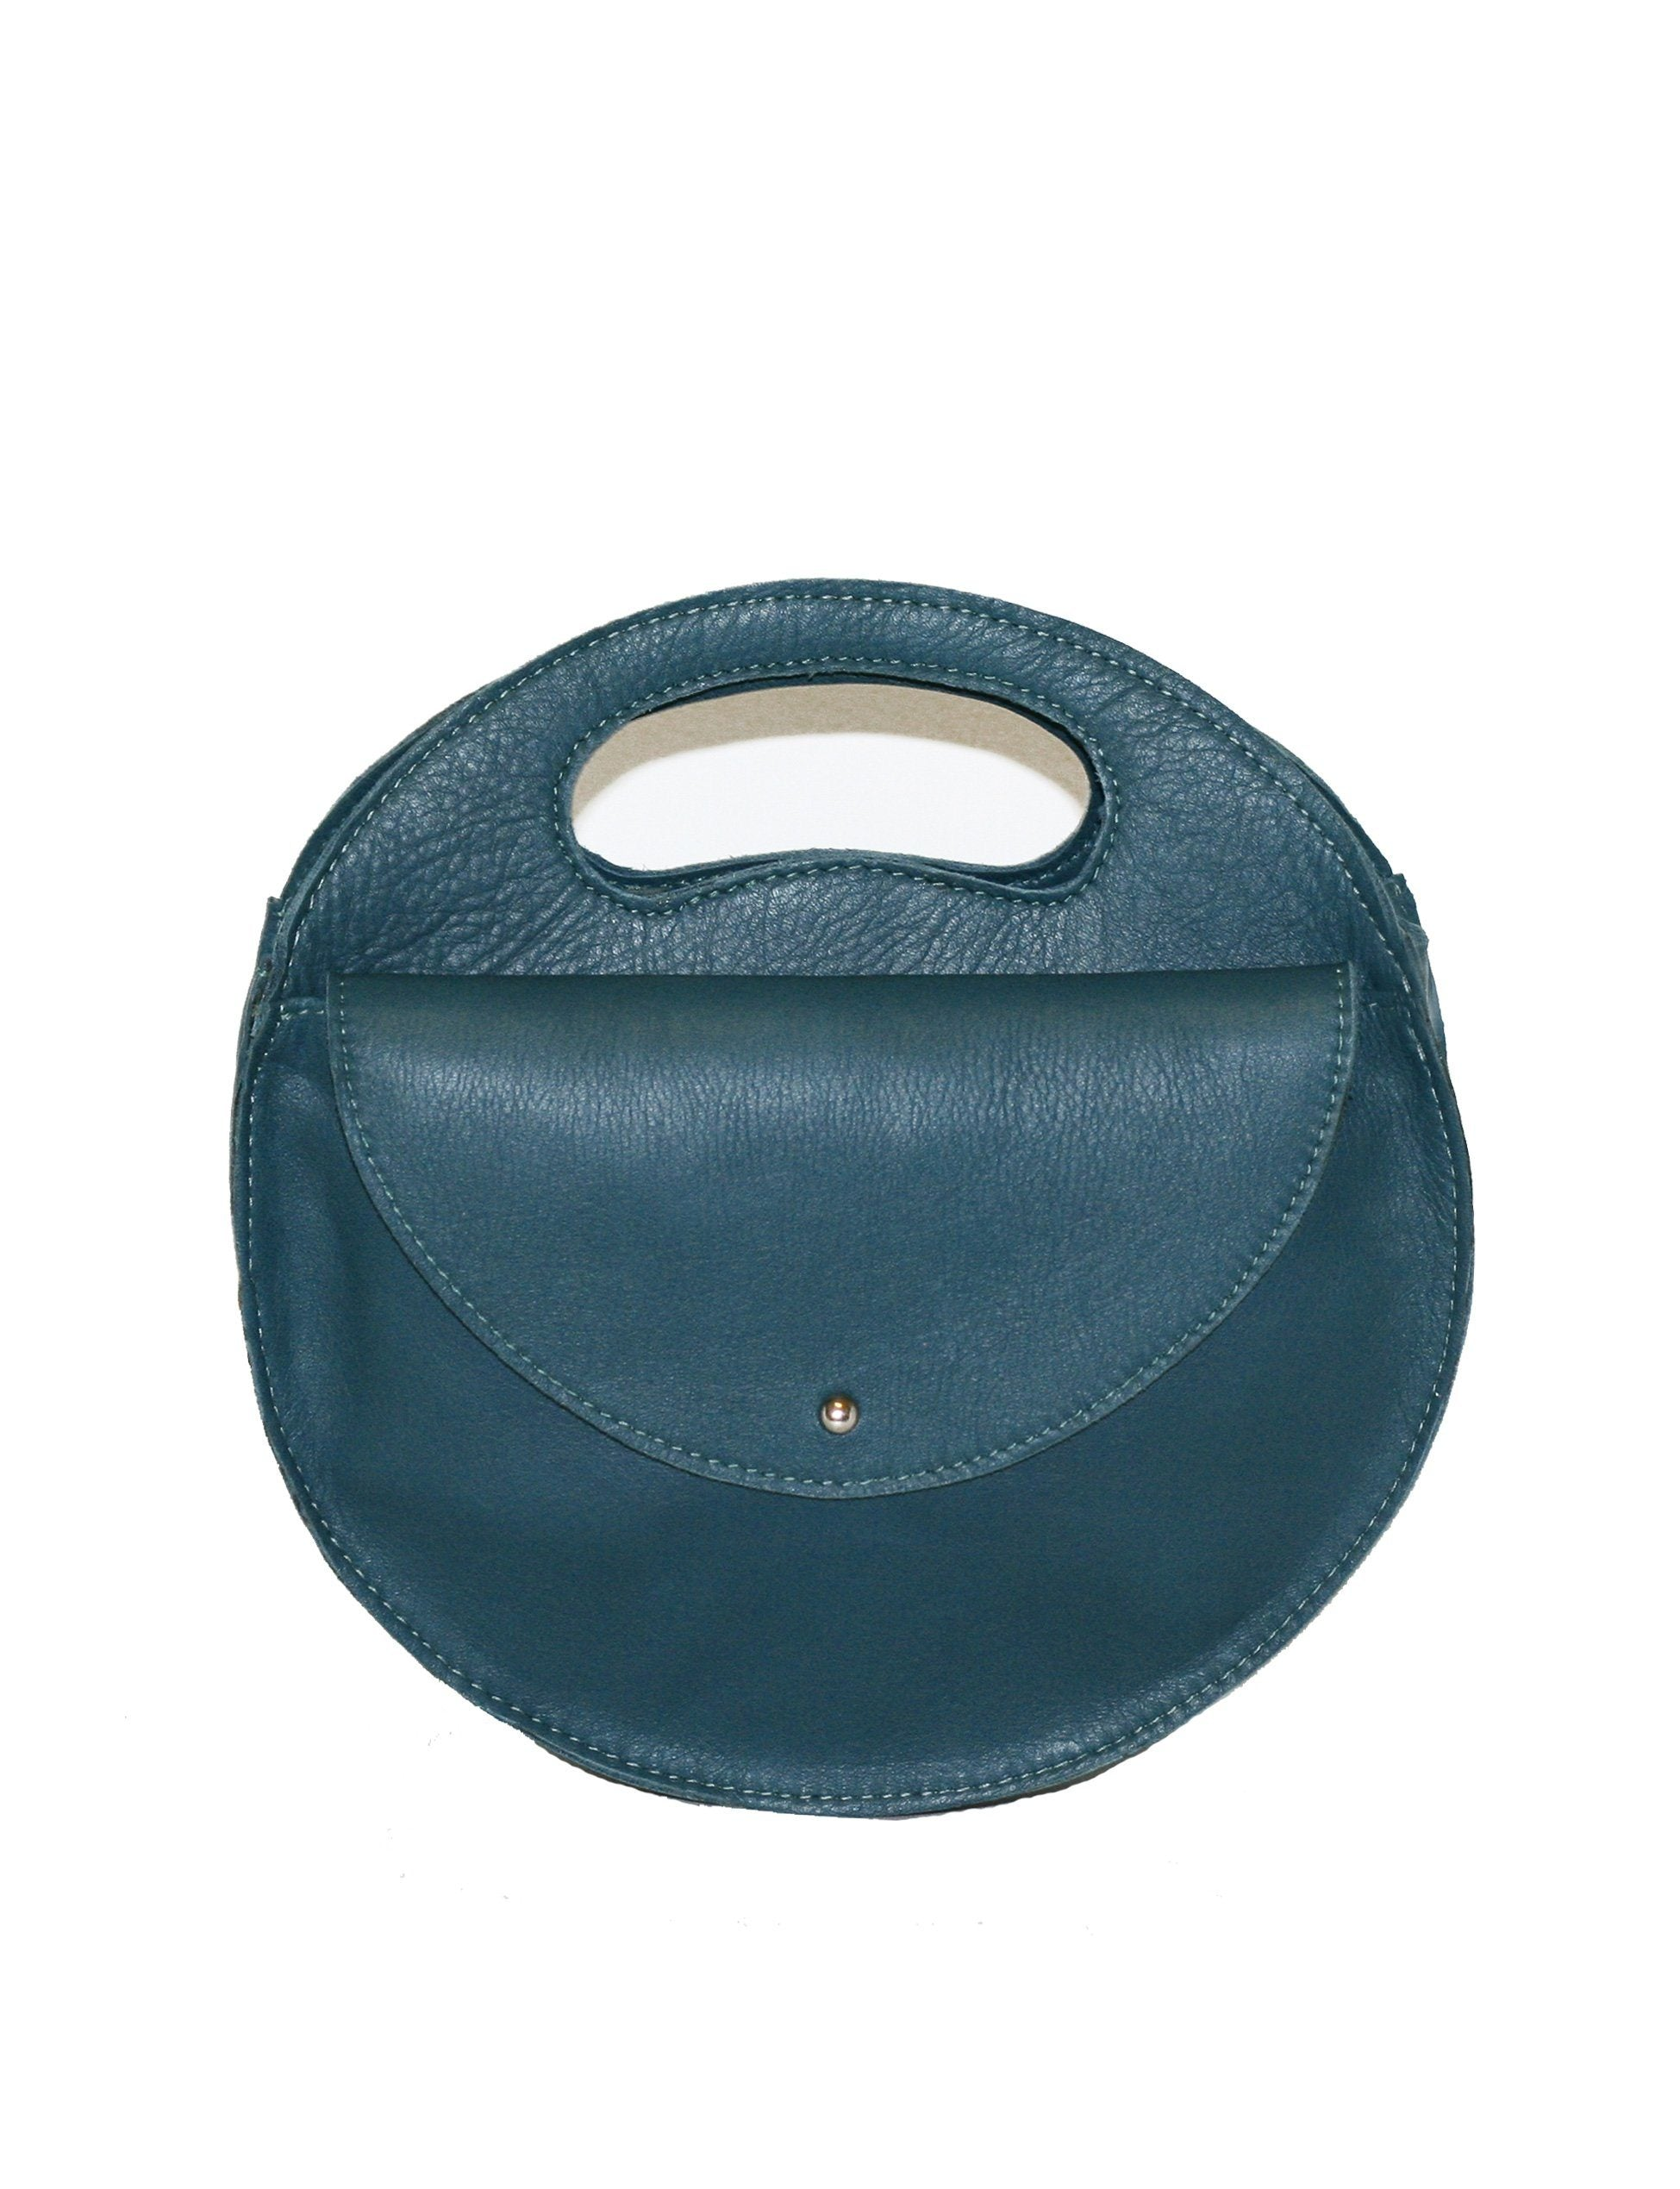 Moon Bag / Teal